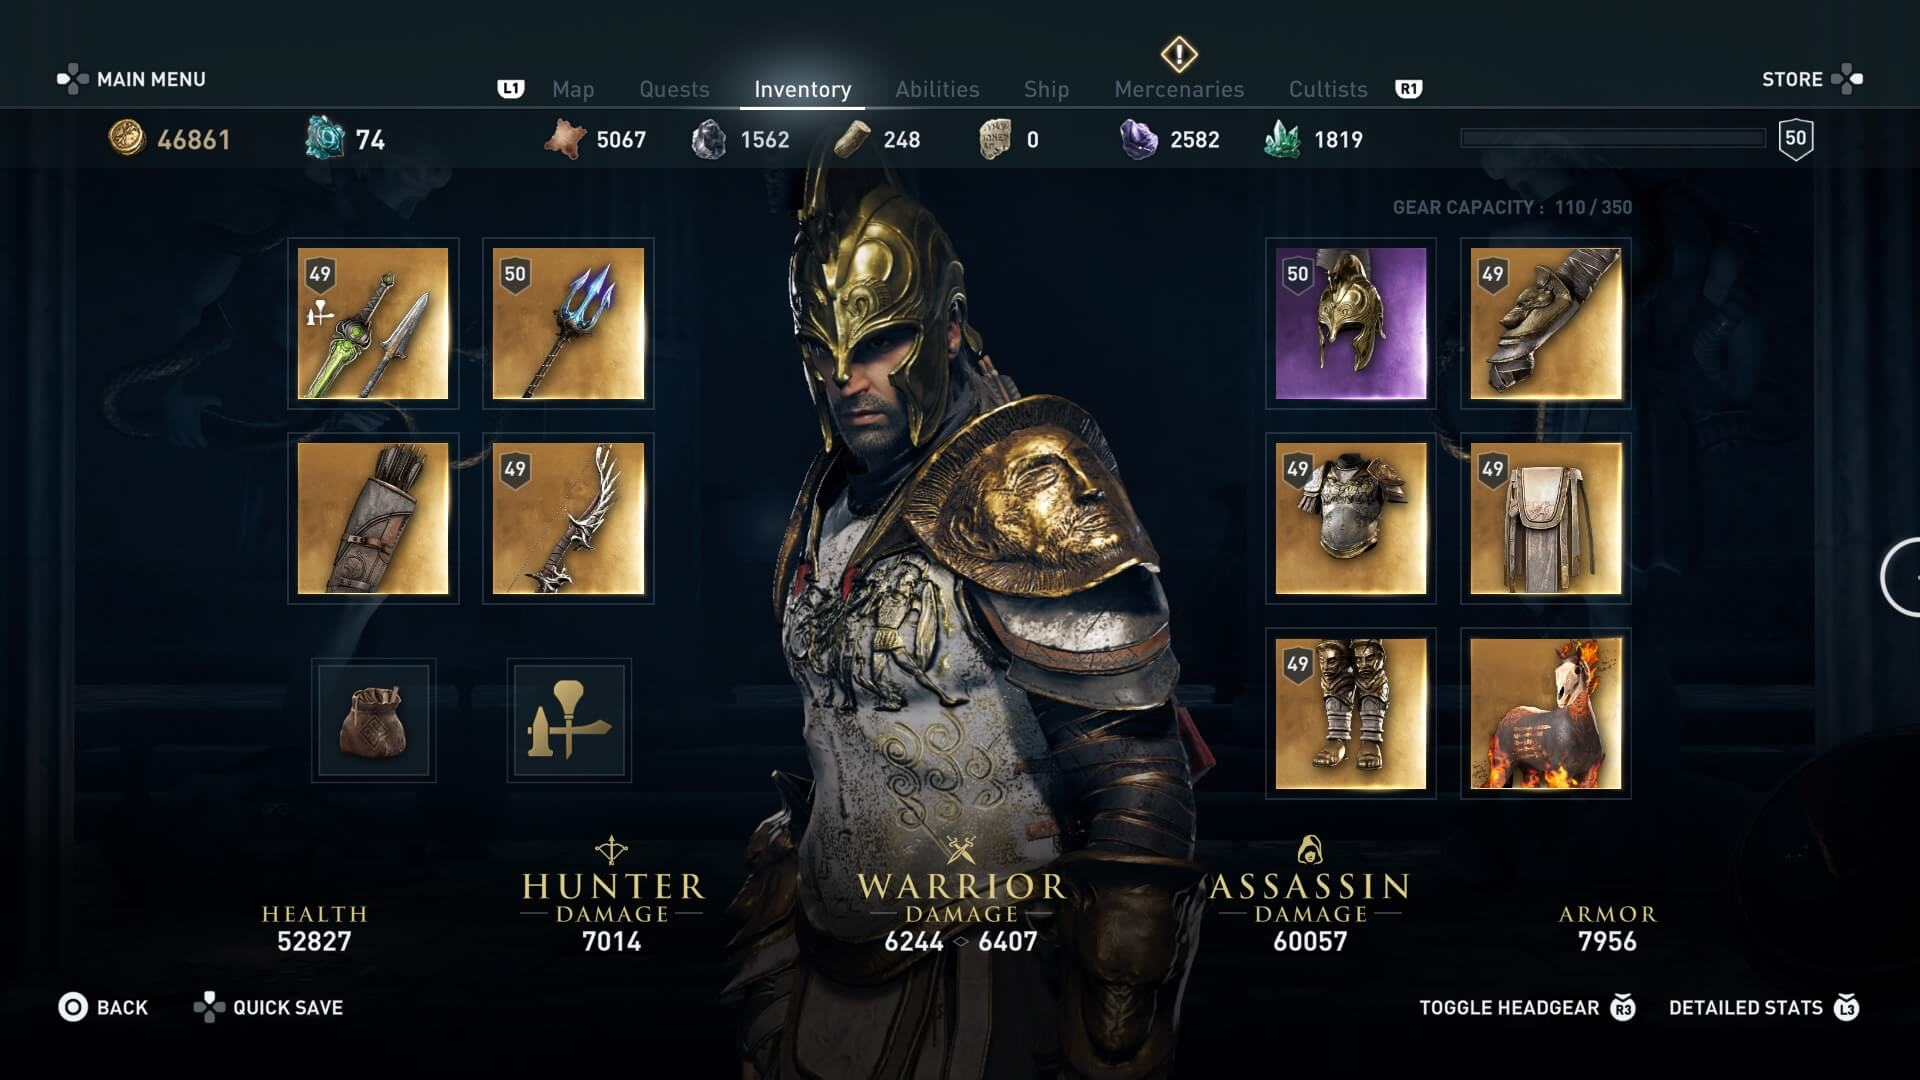 Assassins Creed® Odyssey 20181103230413 - Assassin's Creed Odyssey: confira o guia de dicas e truques do game